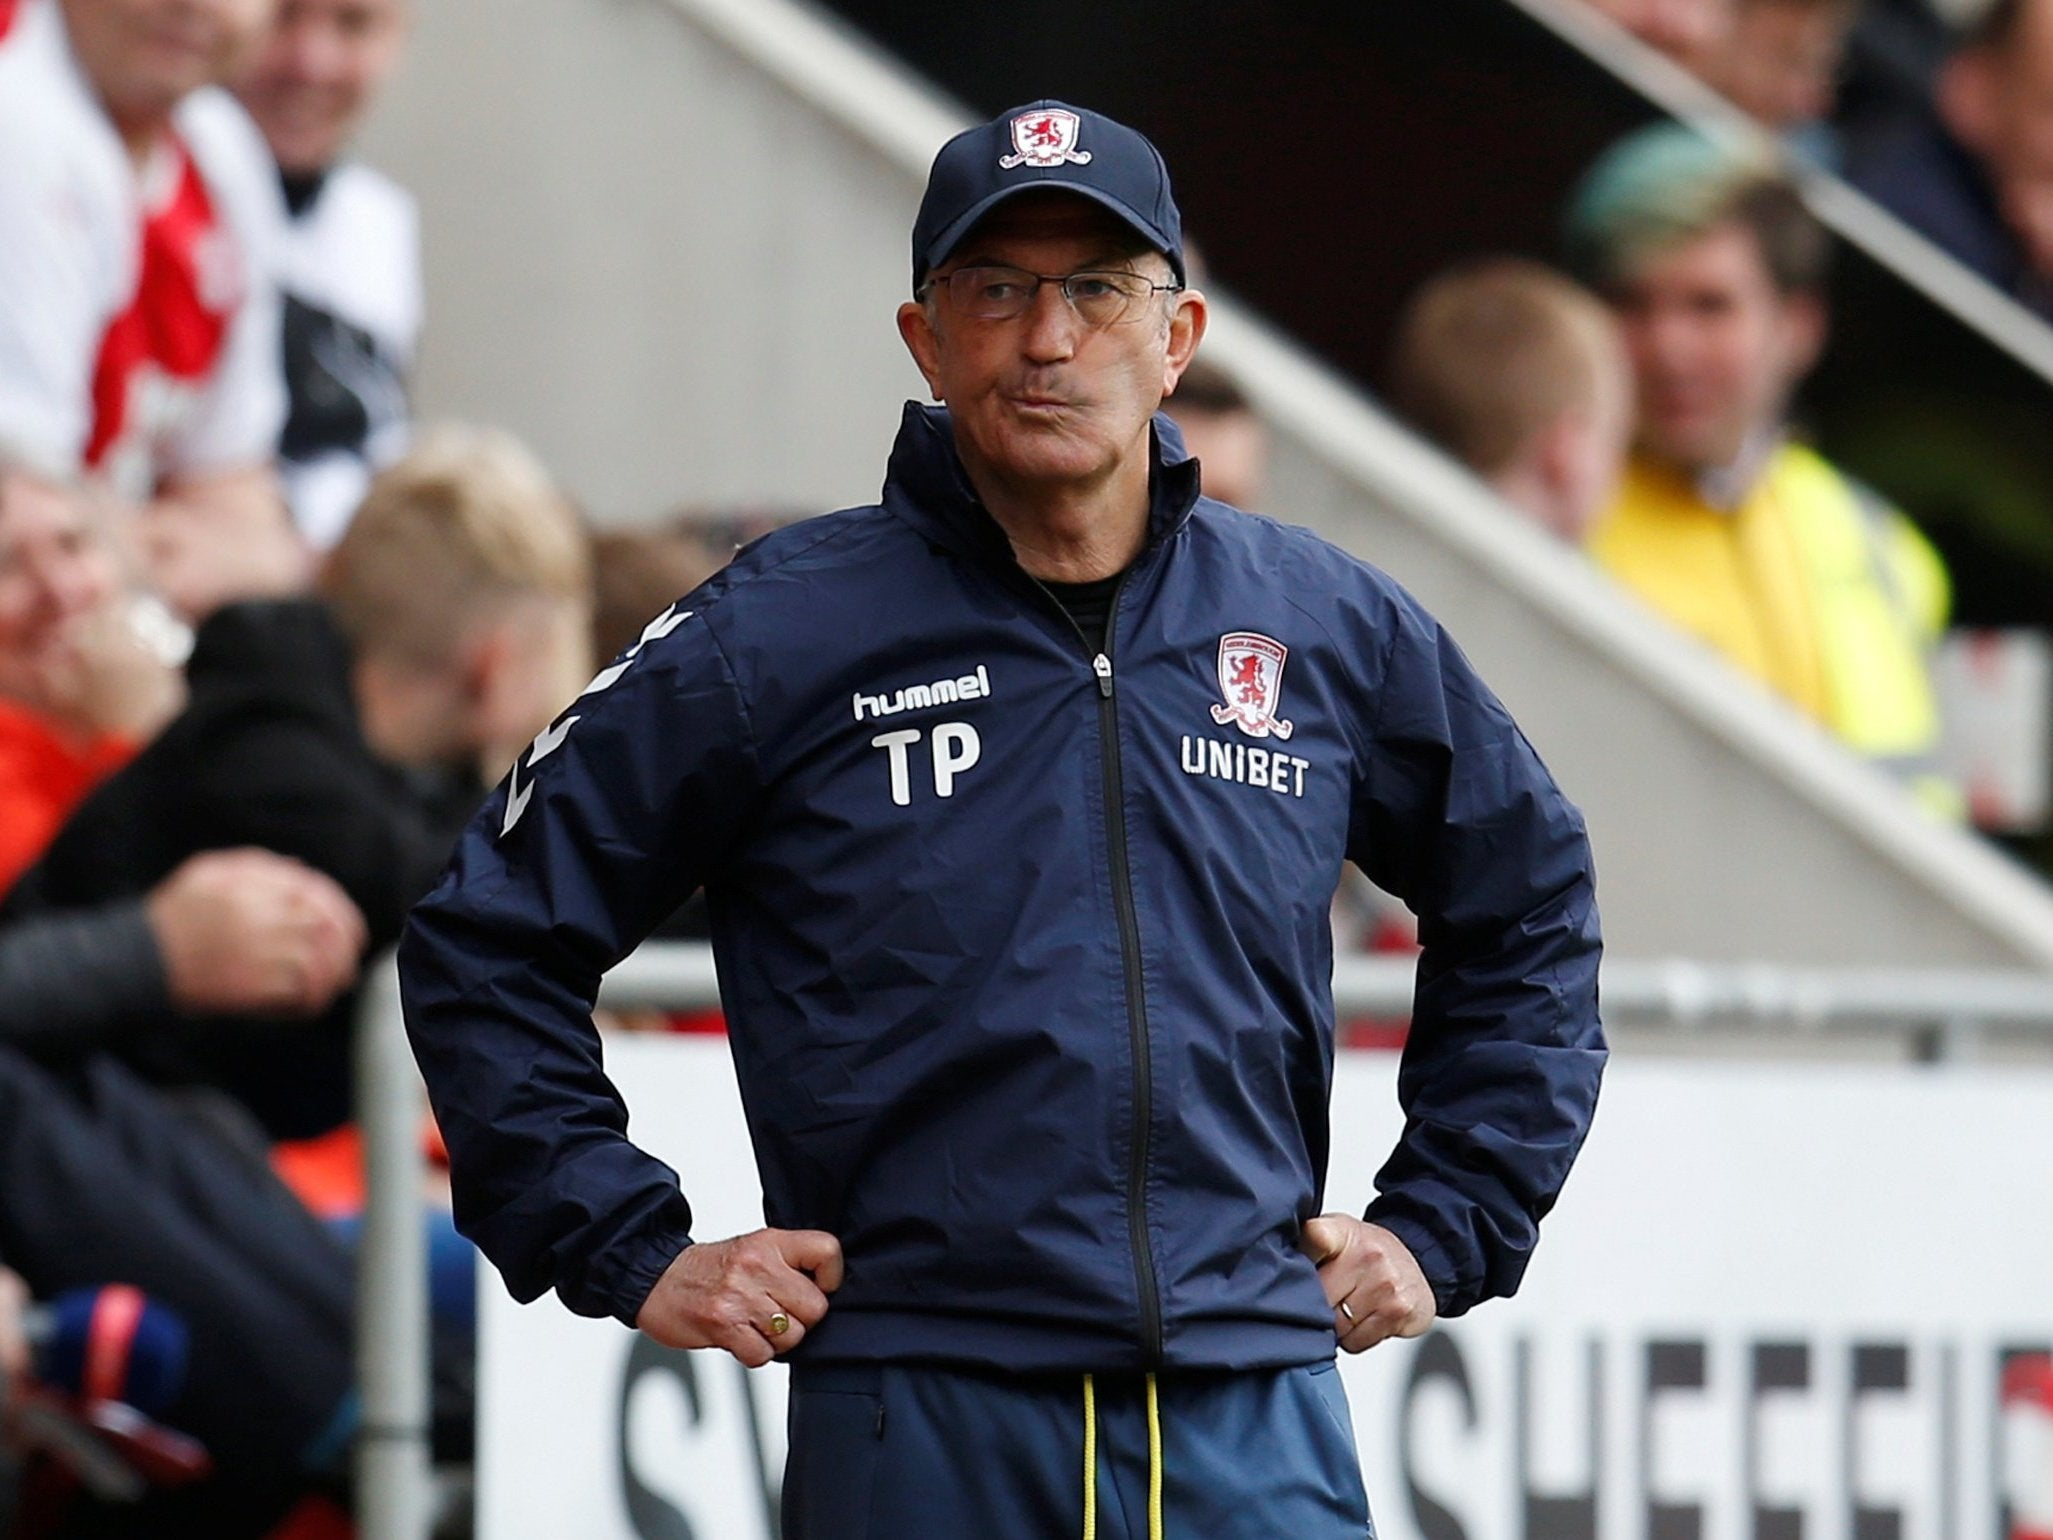 Tony Pulis: Middlesbrough manager leaves club after failure